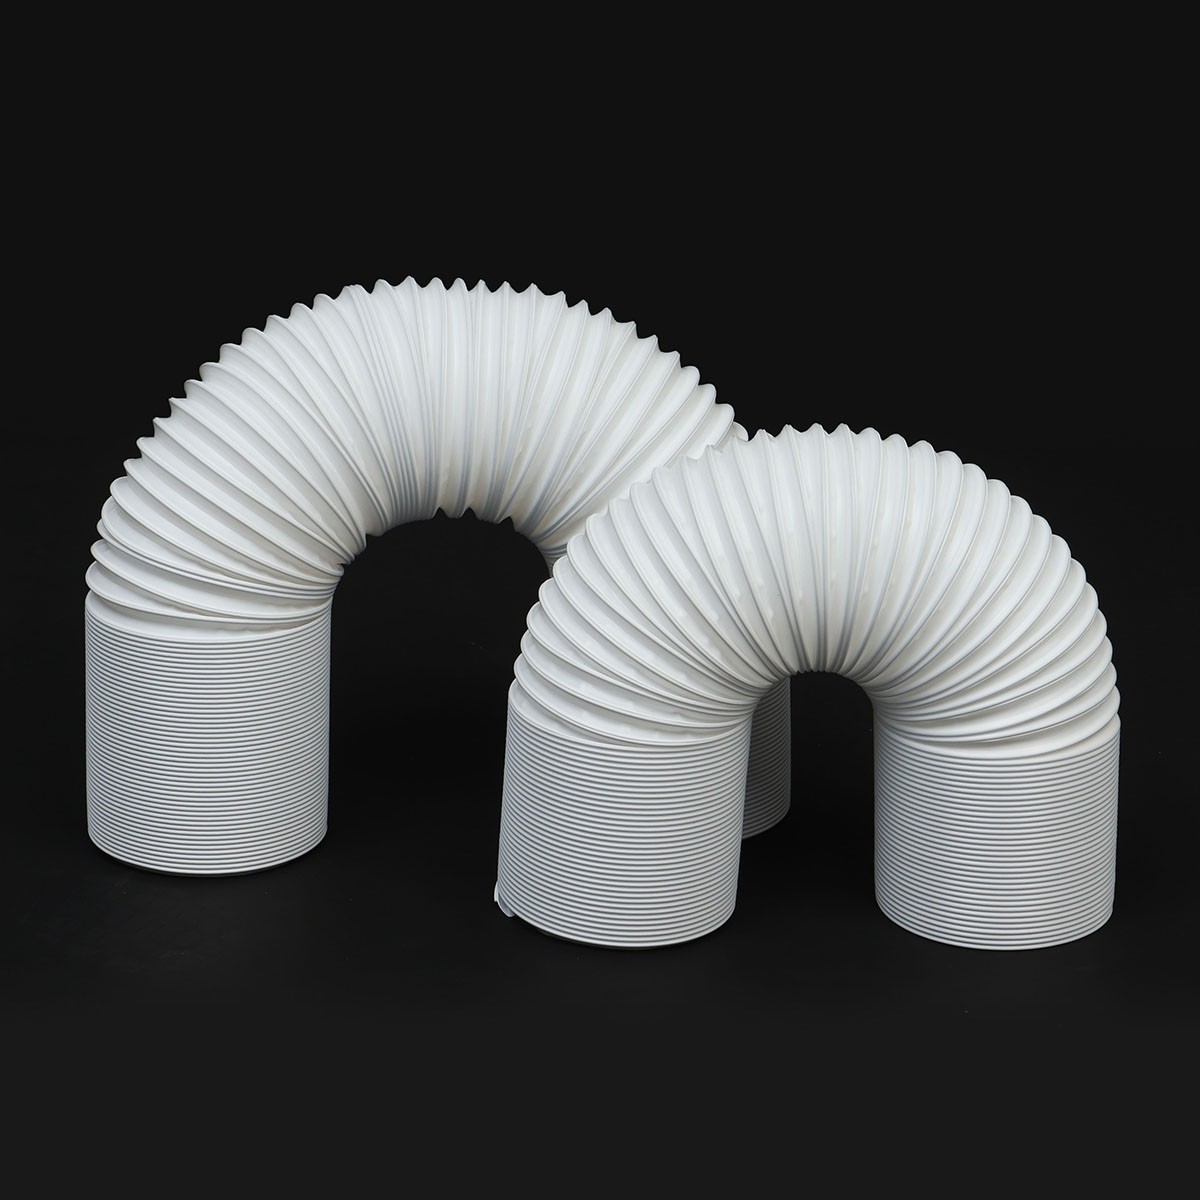 Diameter 13cm Exhaust Hose Tube Free Extension For Portable Air Conditioner 1.5m/3m